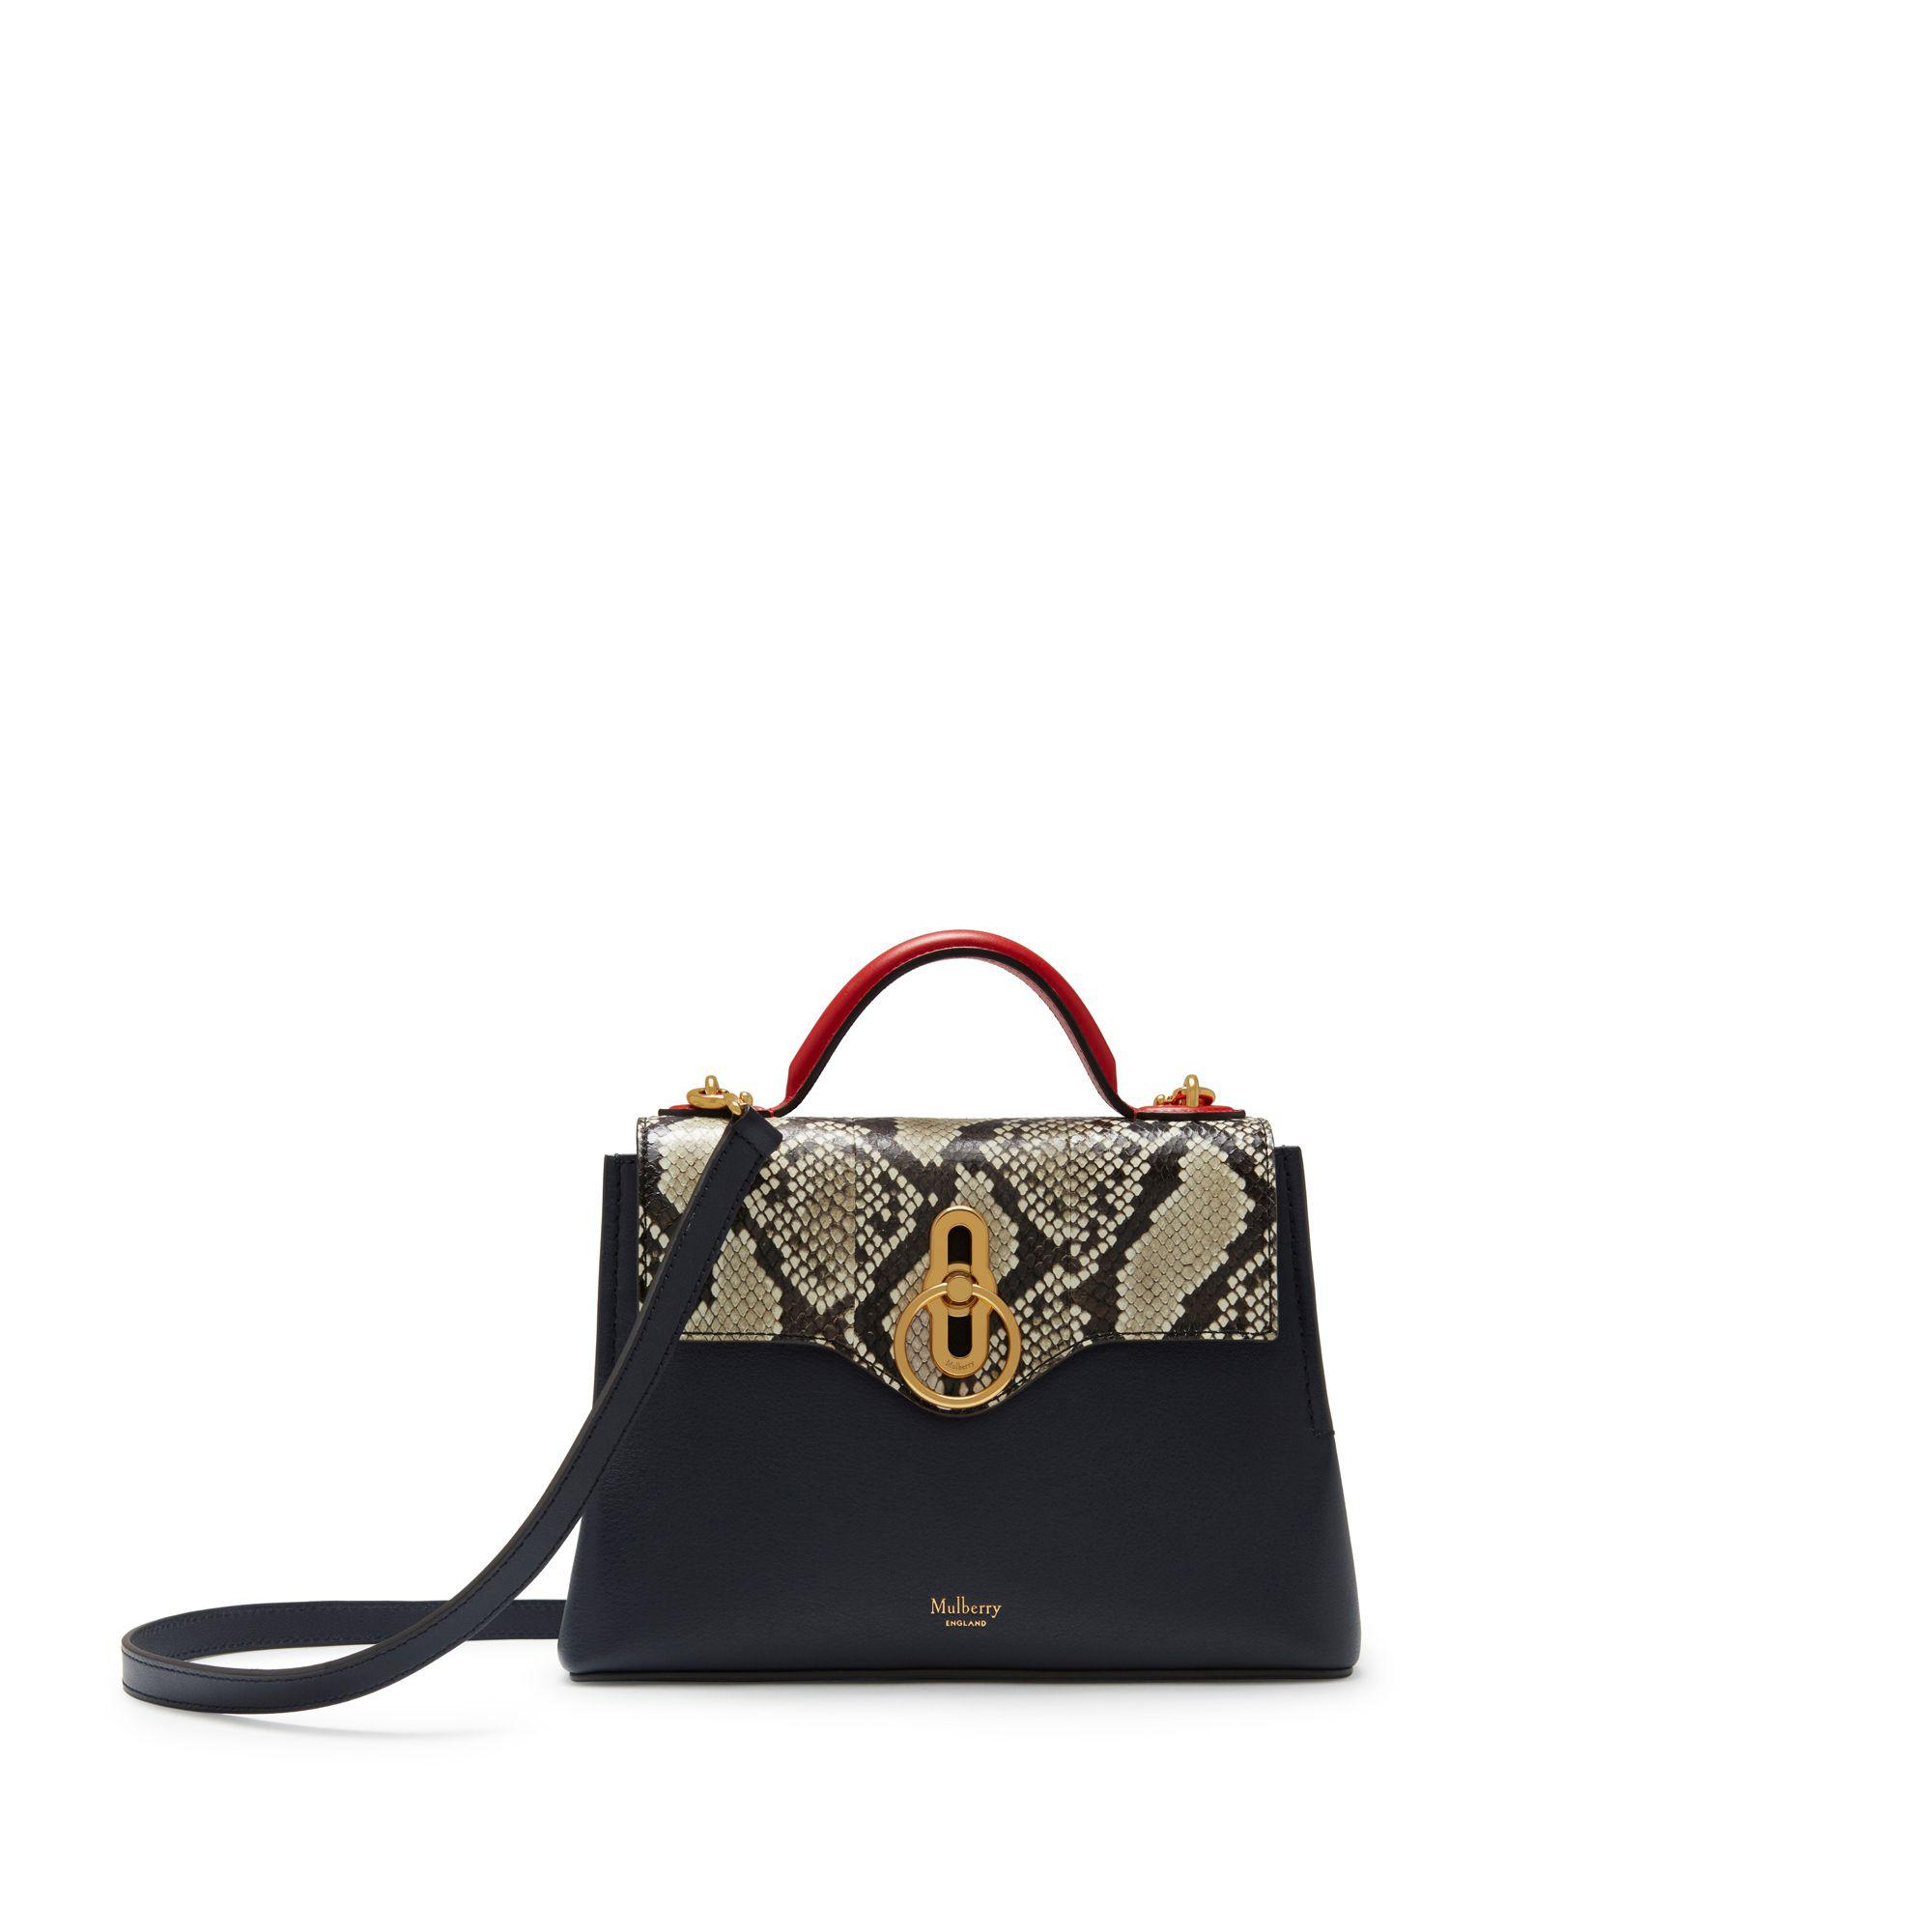 68a1f47cb634 Lyst - Mulberry Mini Seaton In Midnight And Hibiscus Red Silky Calf ...